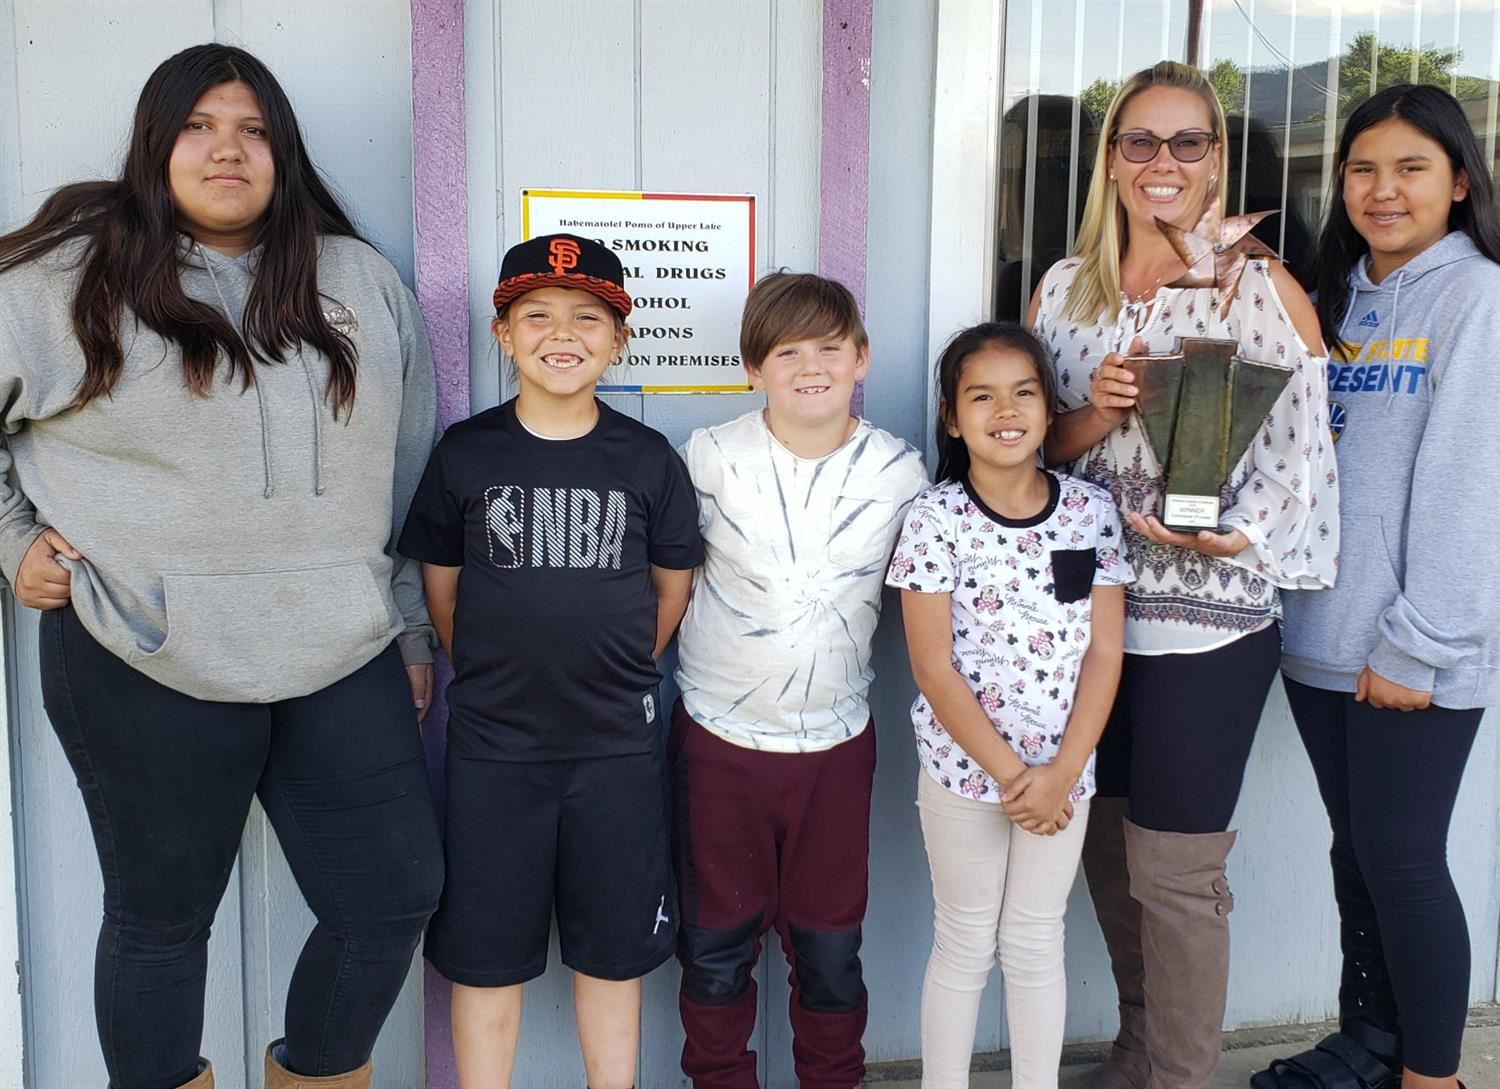 Students from Habematolel Education Center accept trophy.